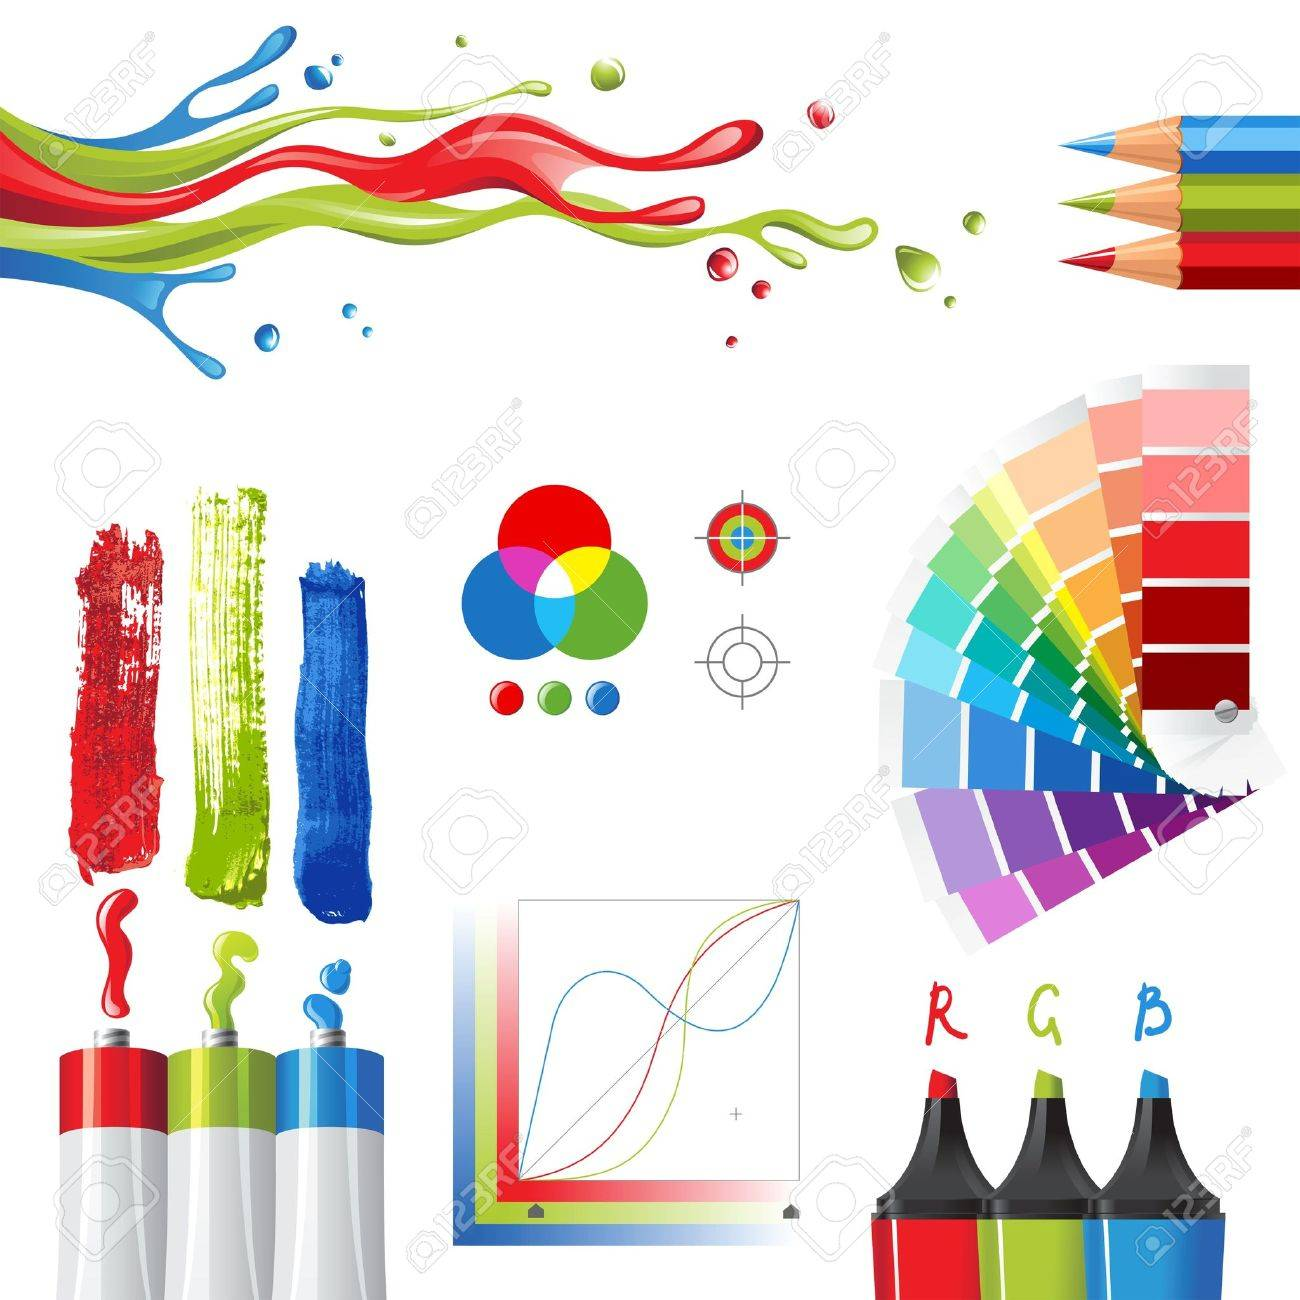 38 611 color palette stock vector illustration and royalty free